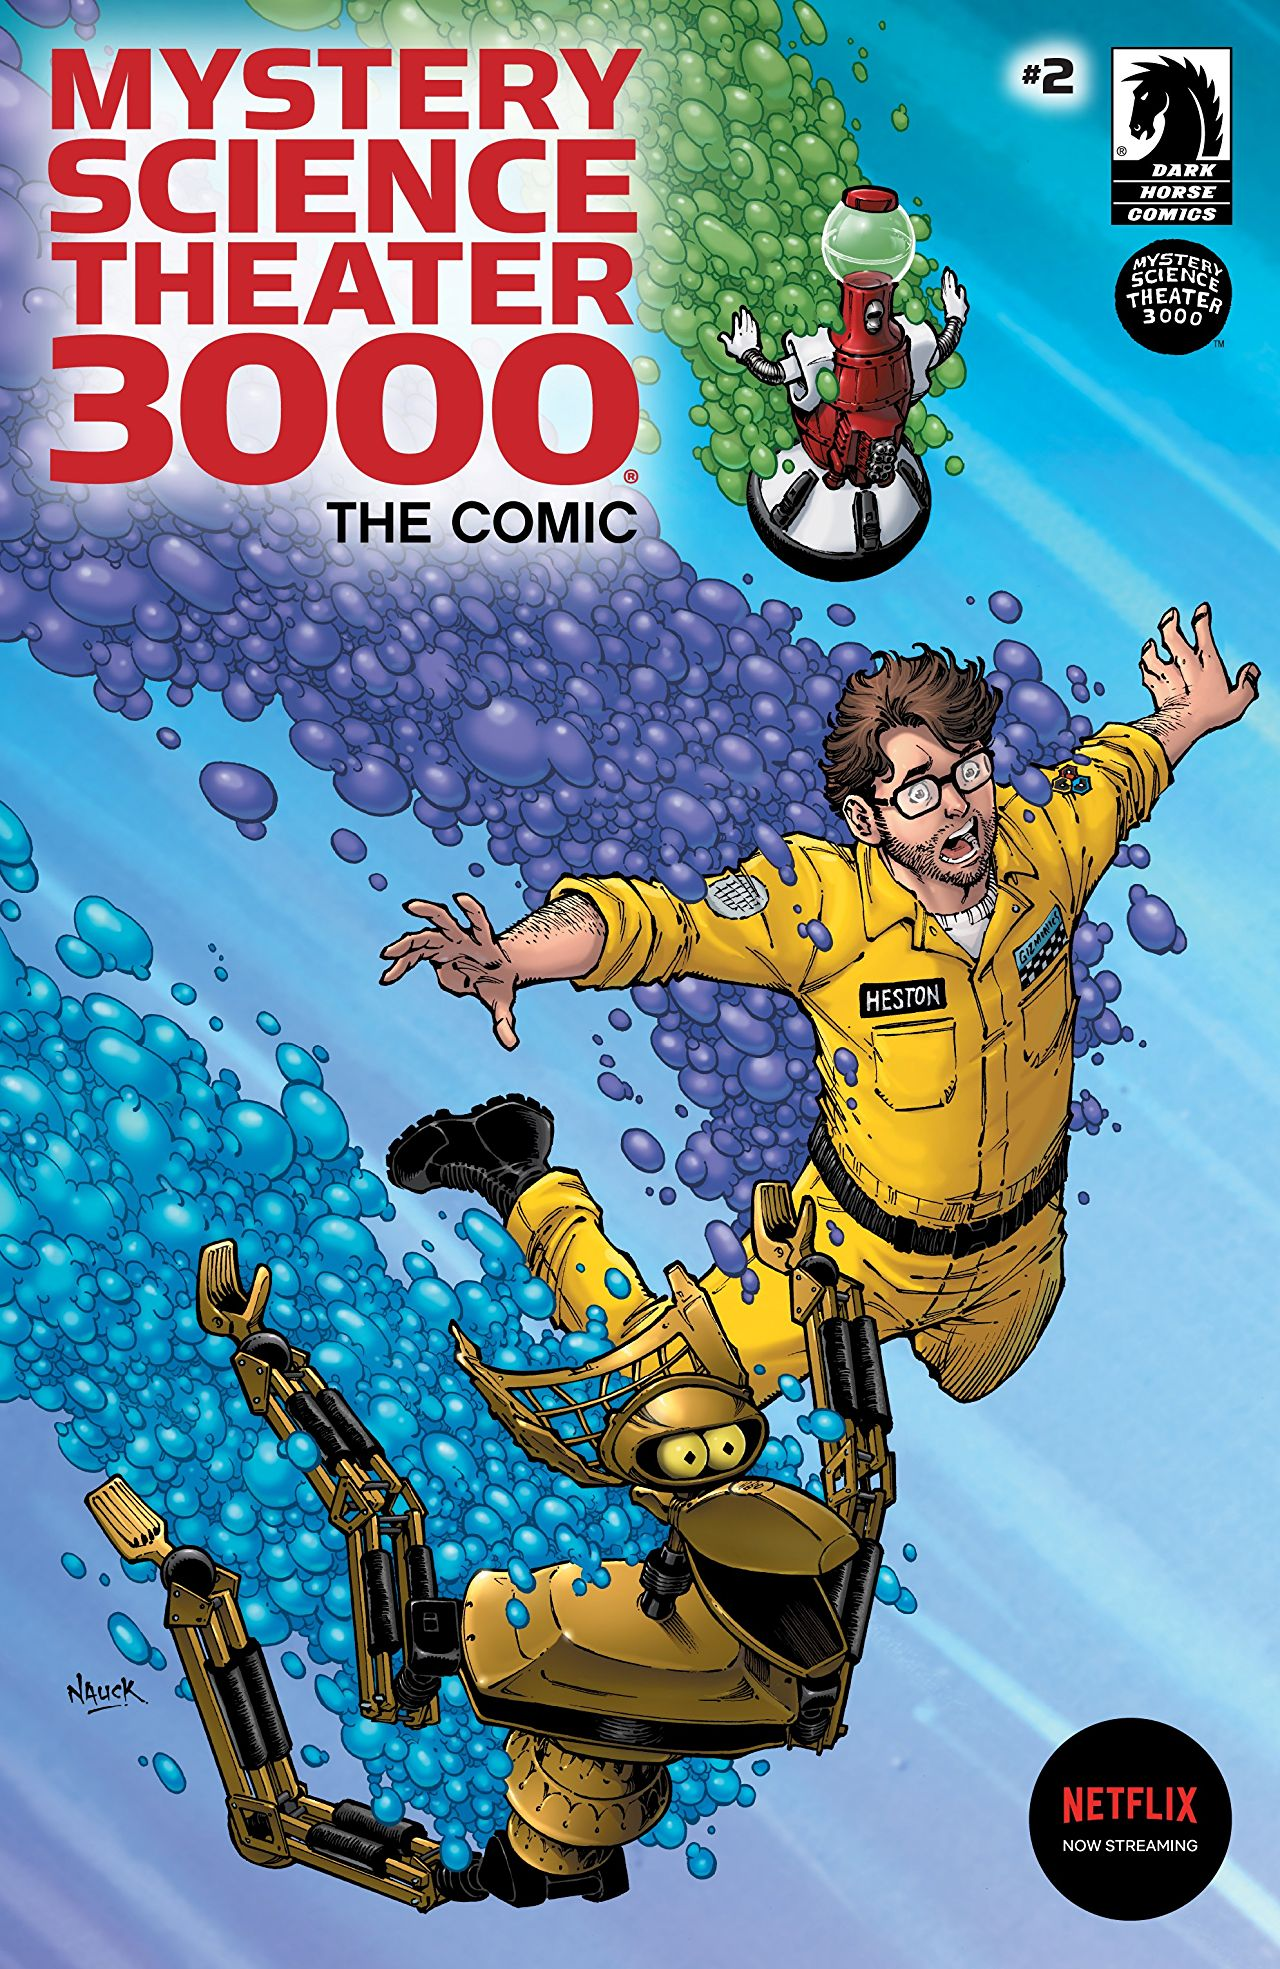 Mystery Science Theater 3000 The Comic #2: Adventures in Pulp